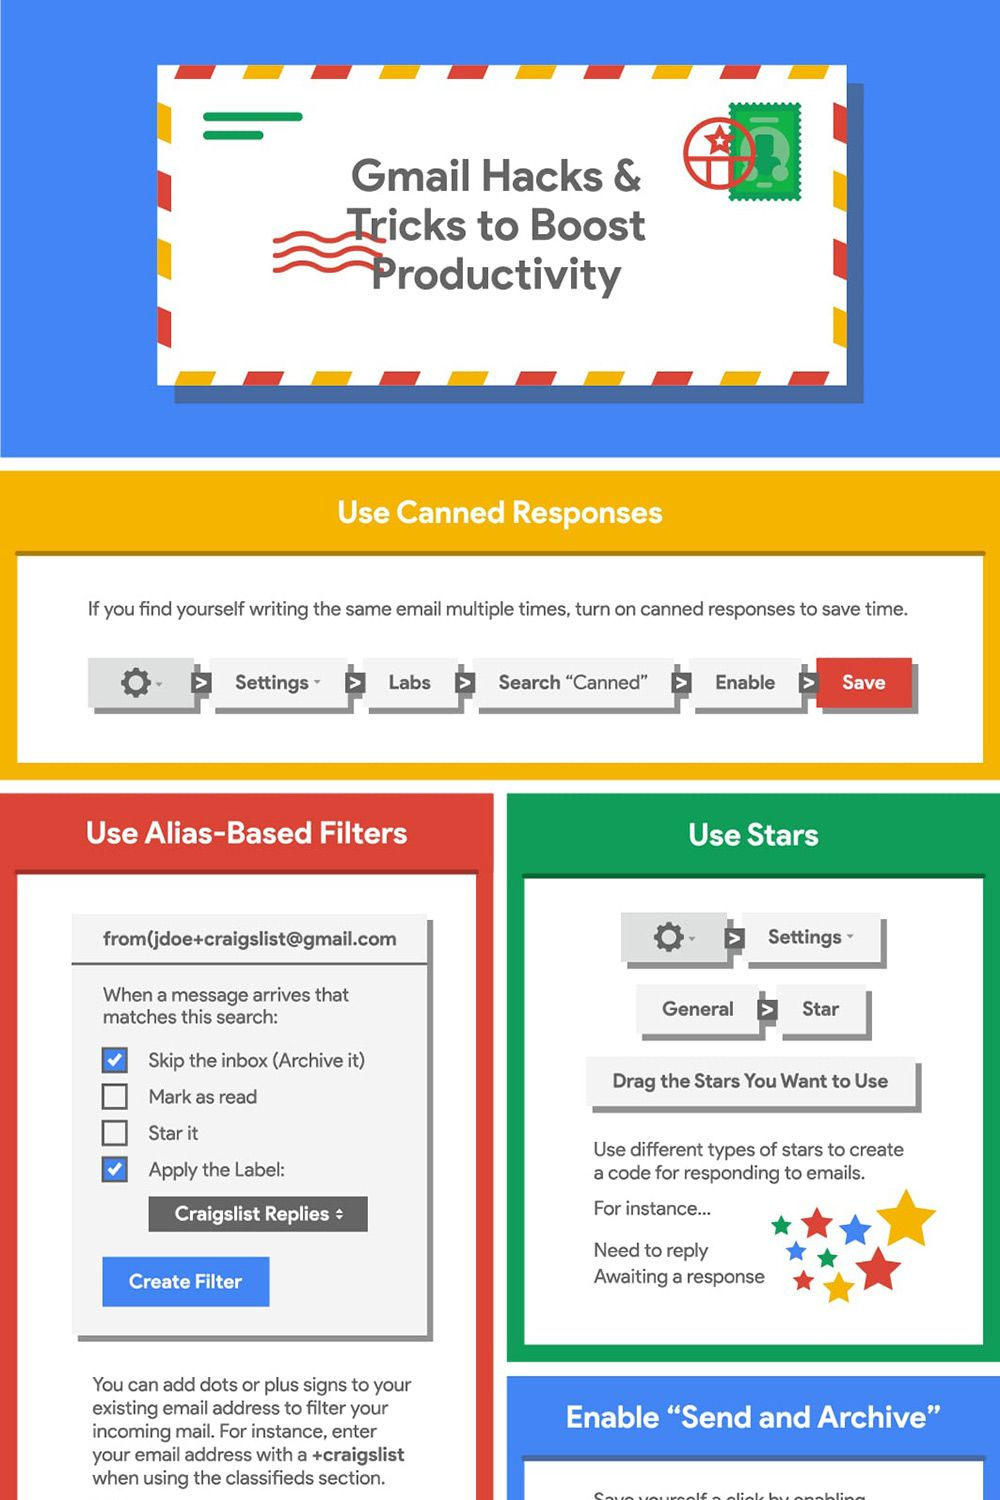 [Infographic] 16 Gmail tips and tricks that could help